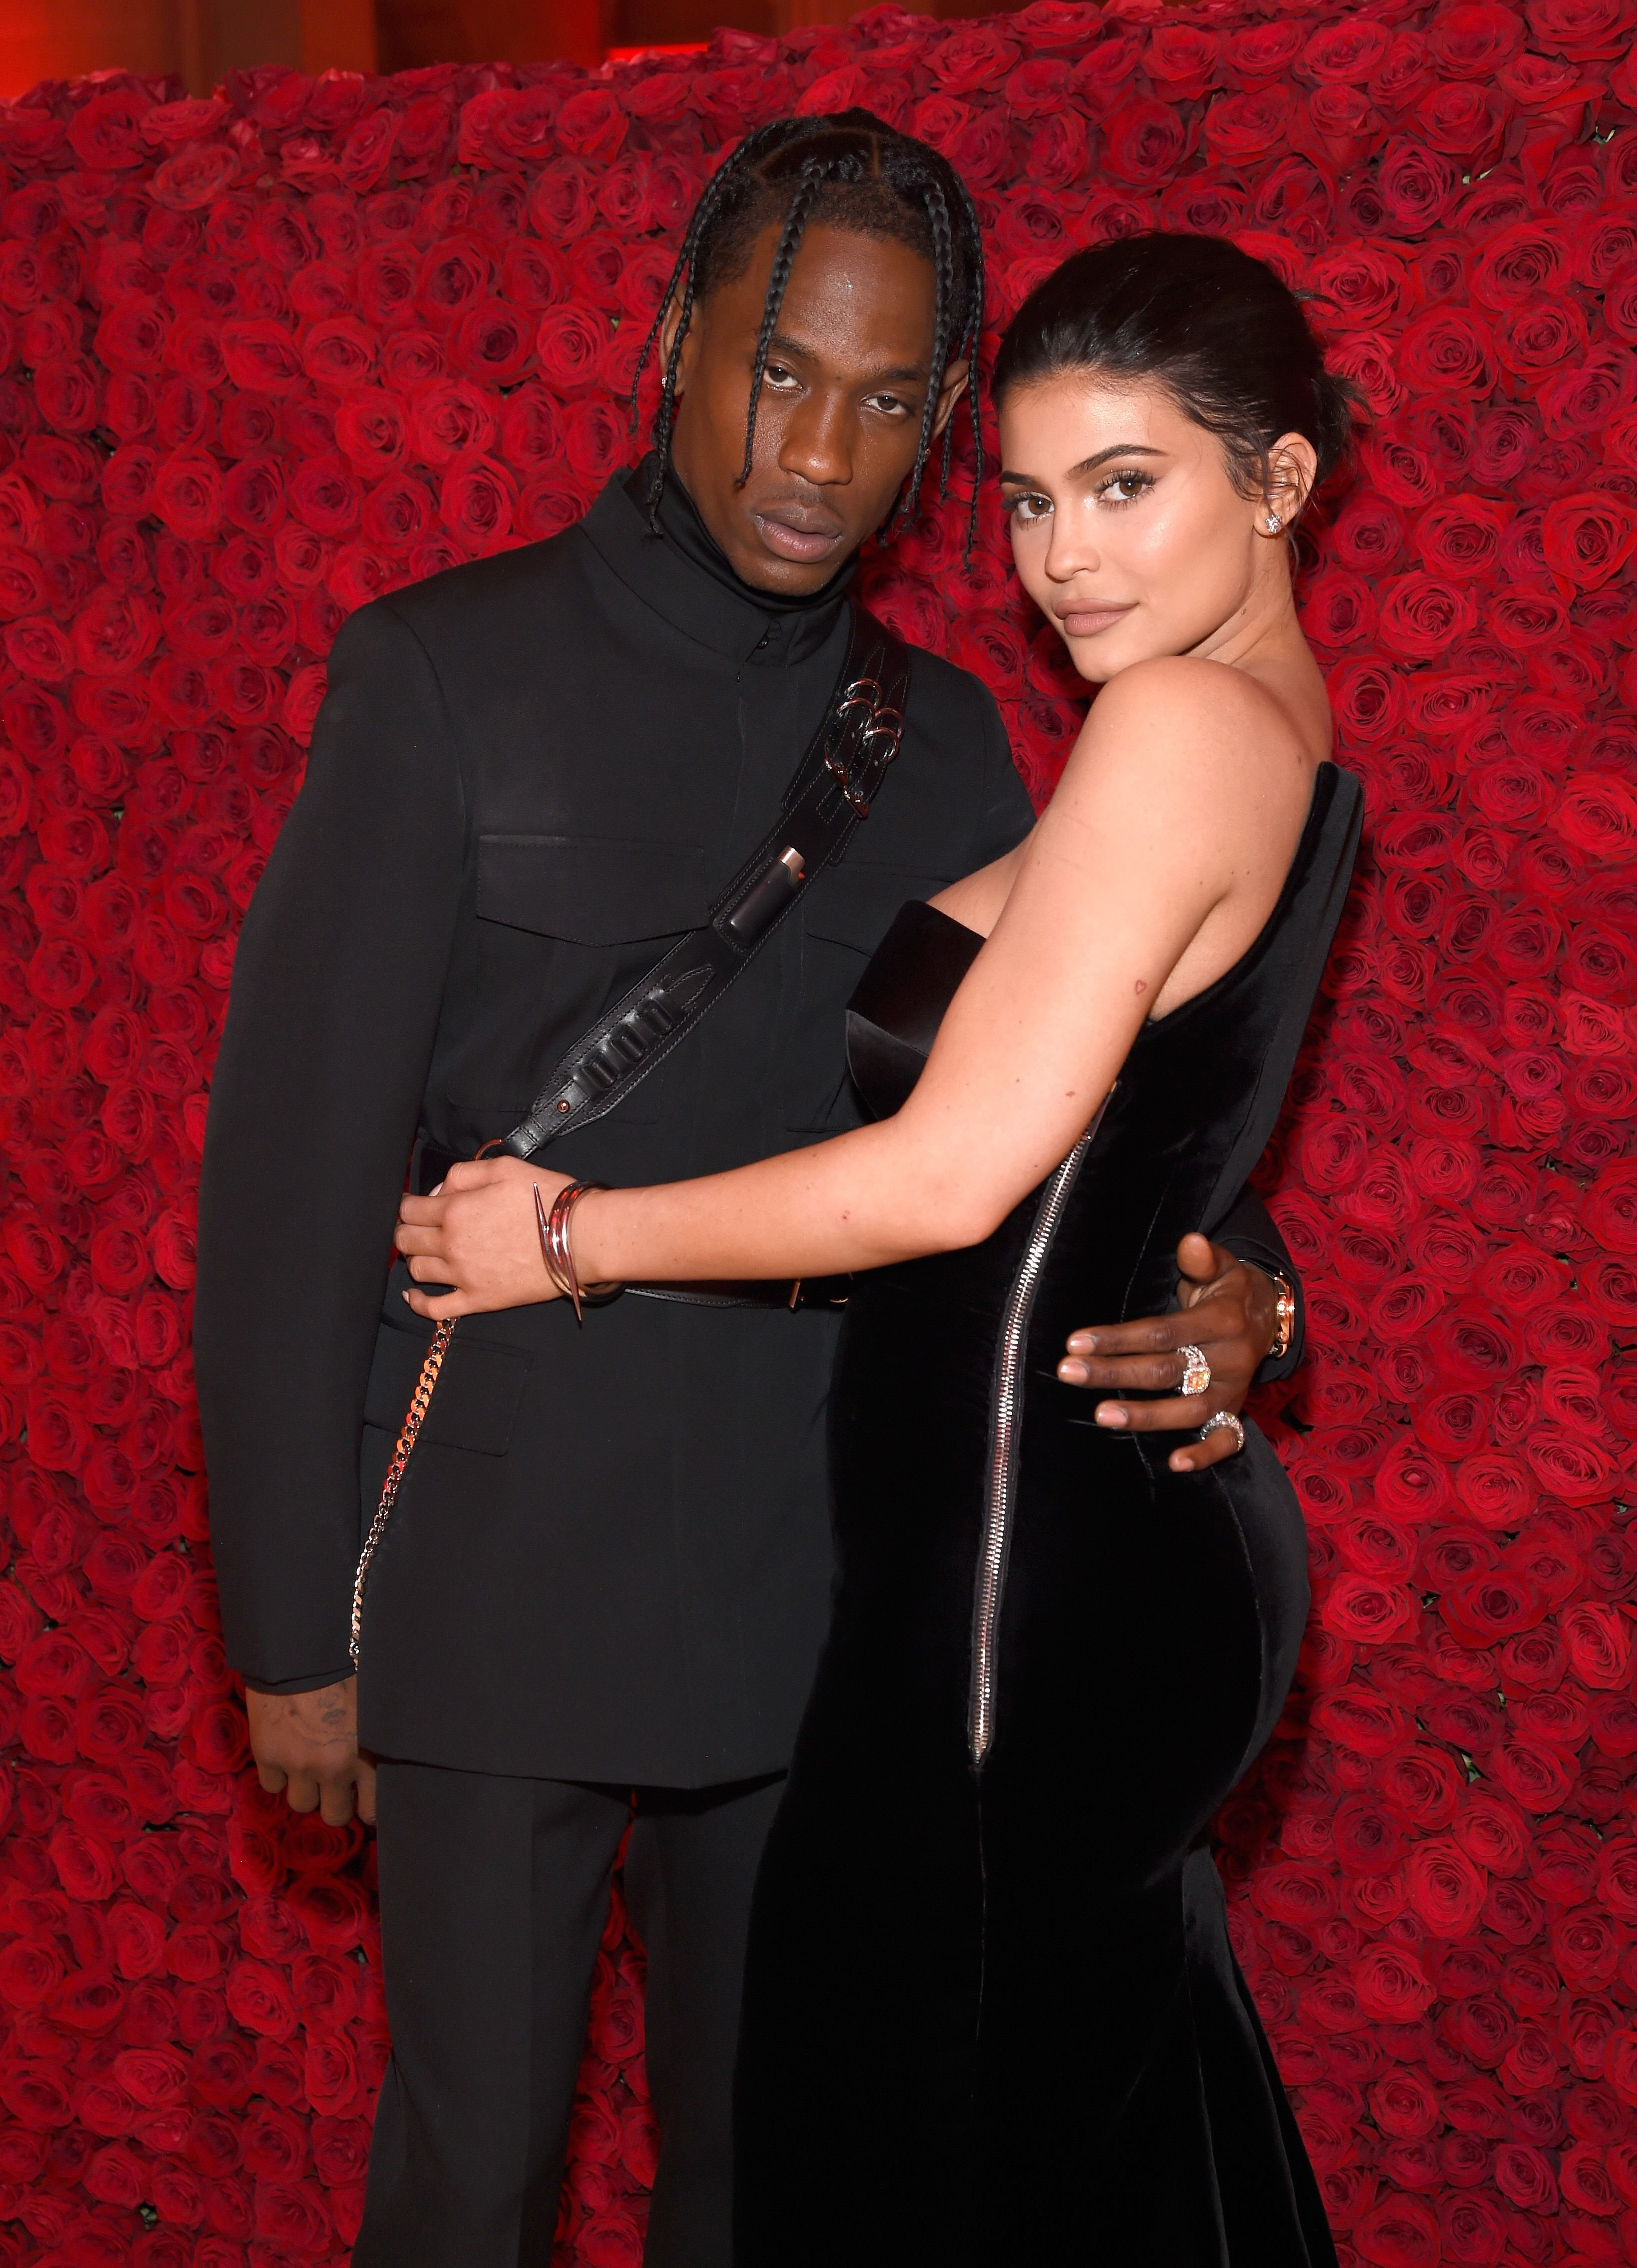 Travis Scott and Kylie Jenner atthe Heavenly Bodies: Fashion & The Catholic Imagination Costume Institute Gala on May 7, 2018, in New York City   Photo:Kevin Mazur/MG18/Getty Images